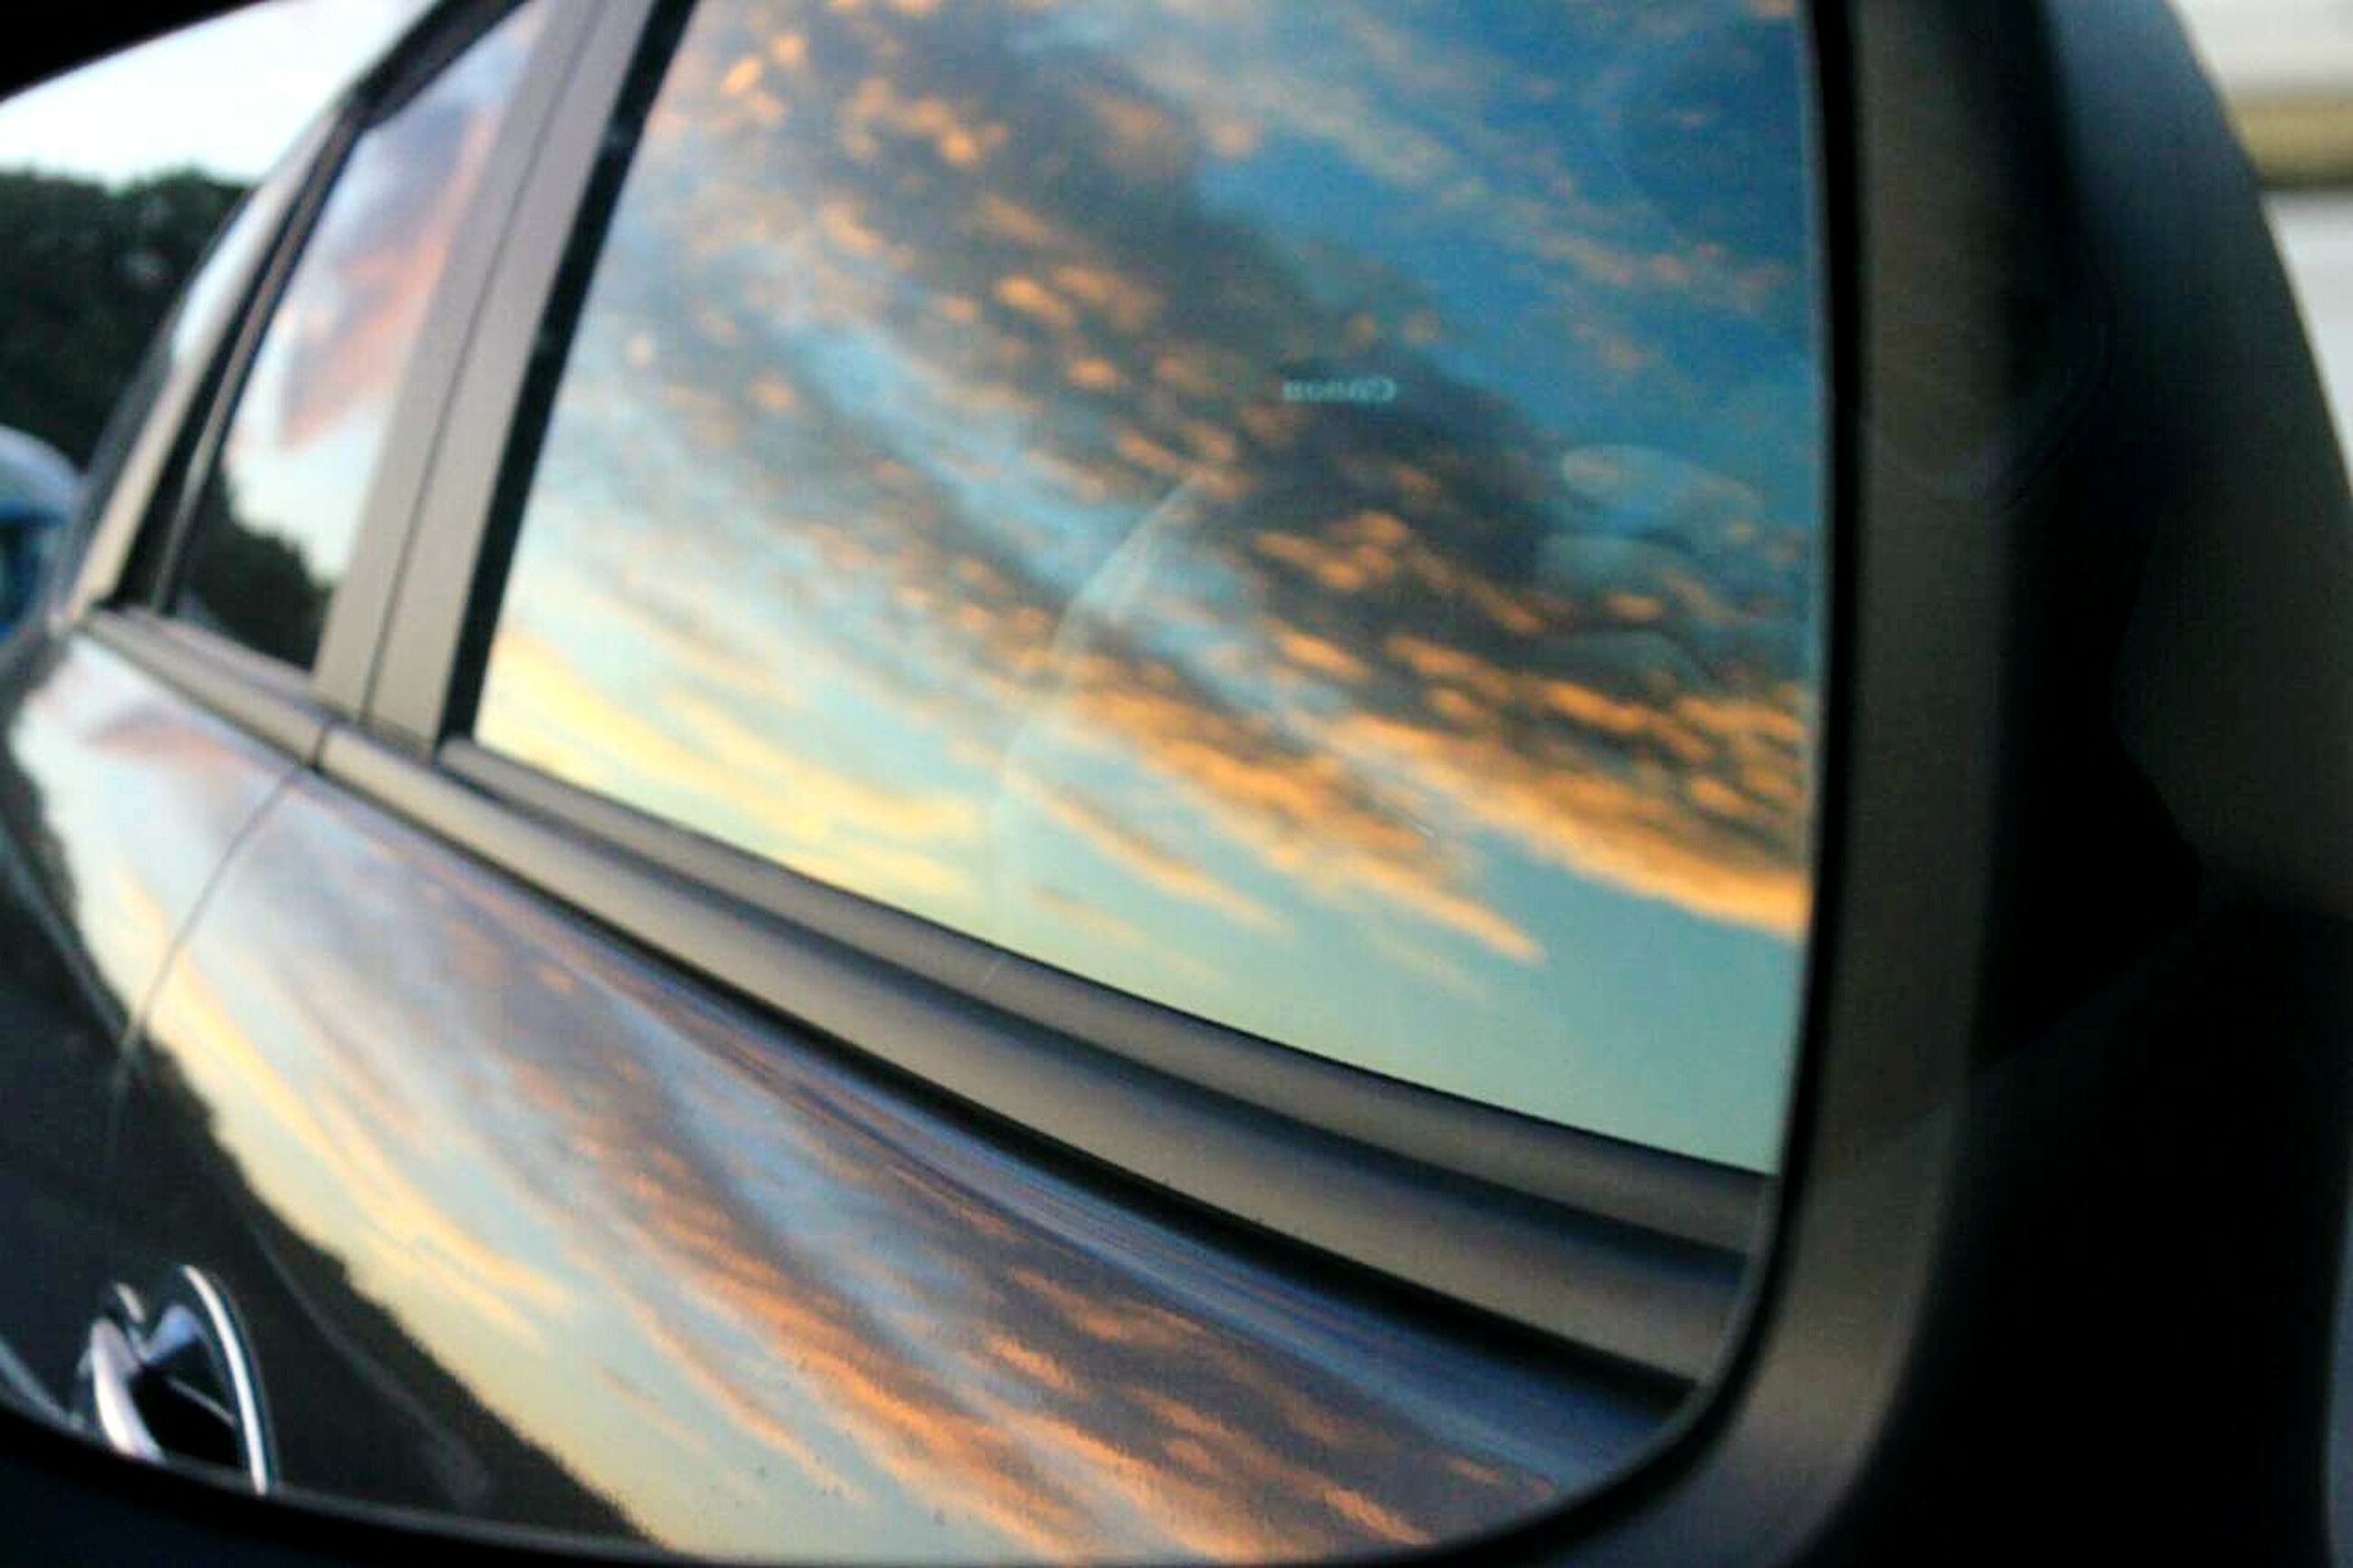 transportation, mode of transport, vehicle interior, car, land vehicle, glass - material, transparent, window, car interior, part of, travel, windshield, side-view mirror, on the move, reflection, cropped, airplane, journey, vehicle part, sky